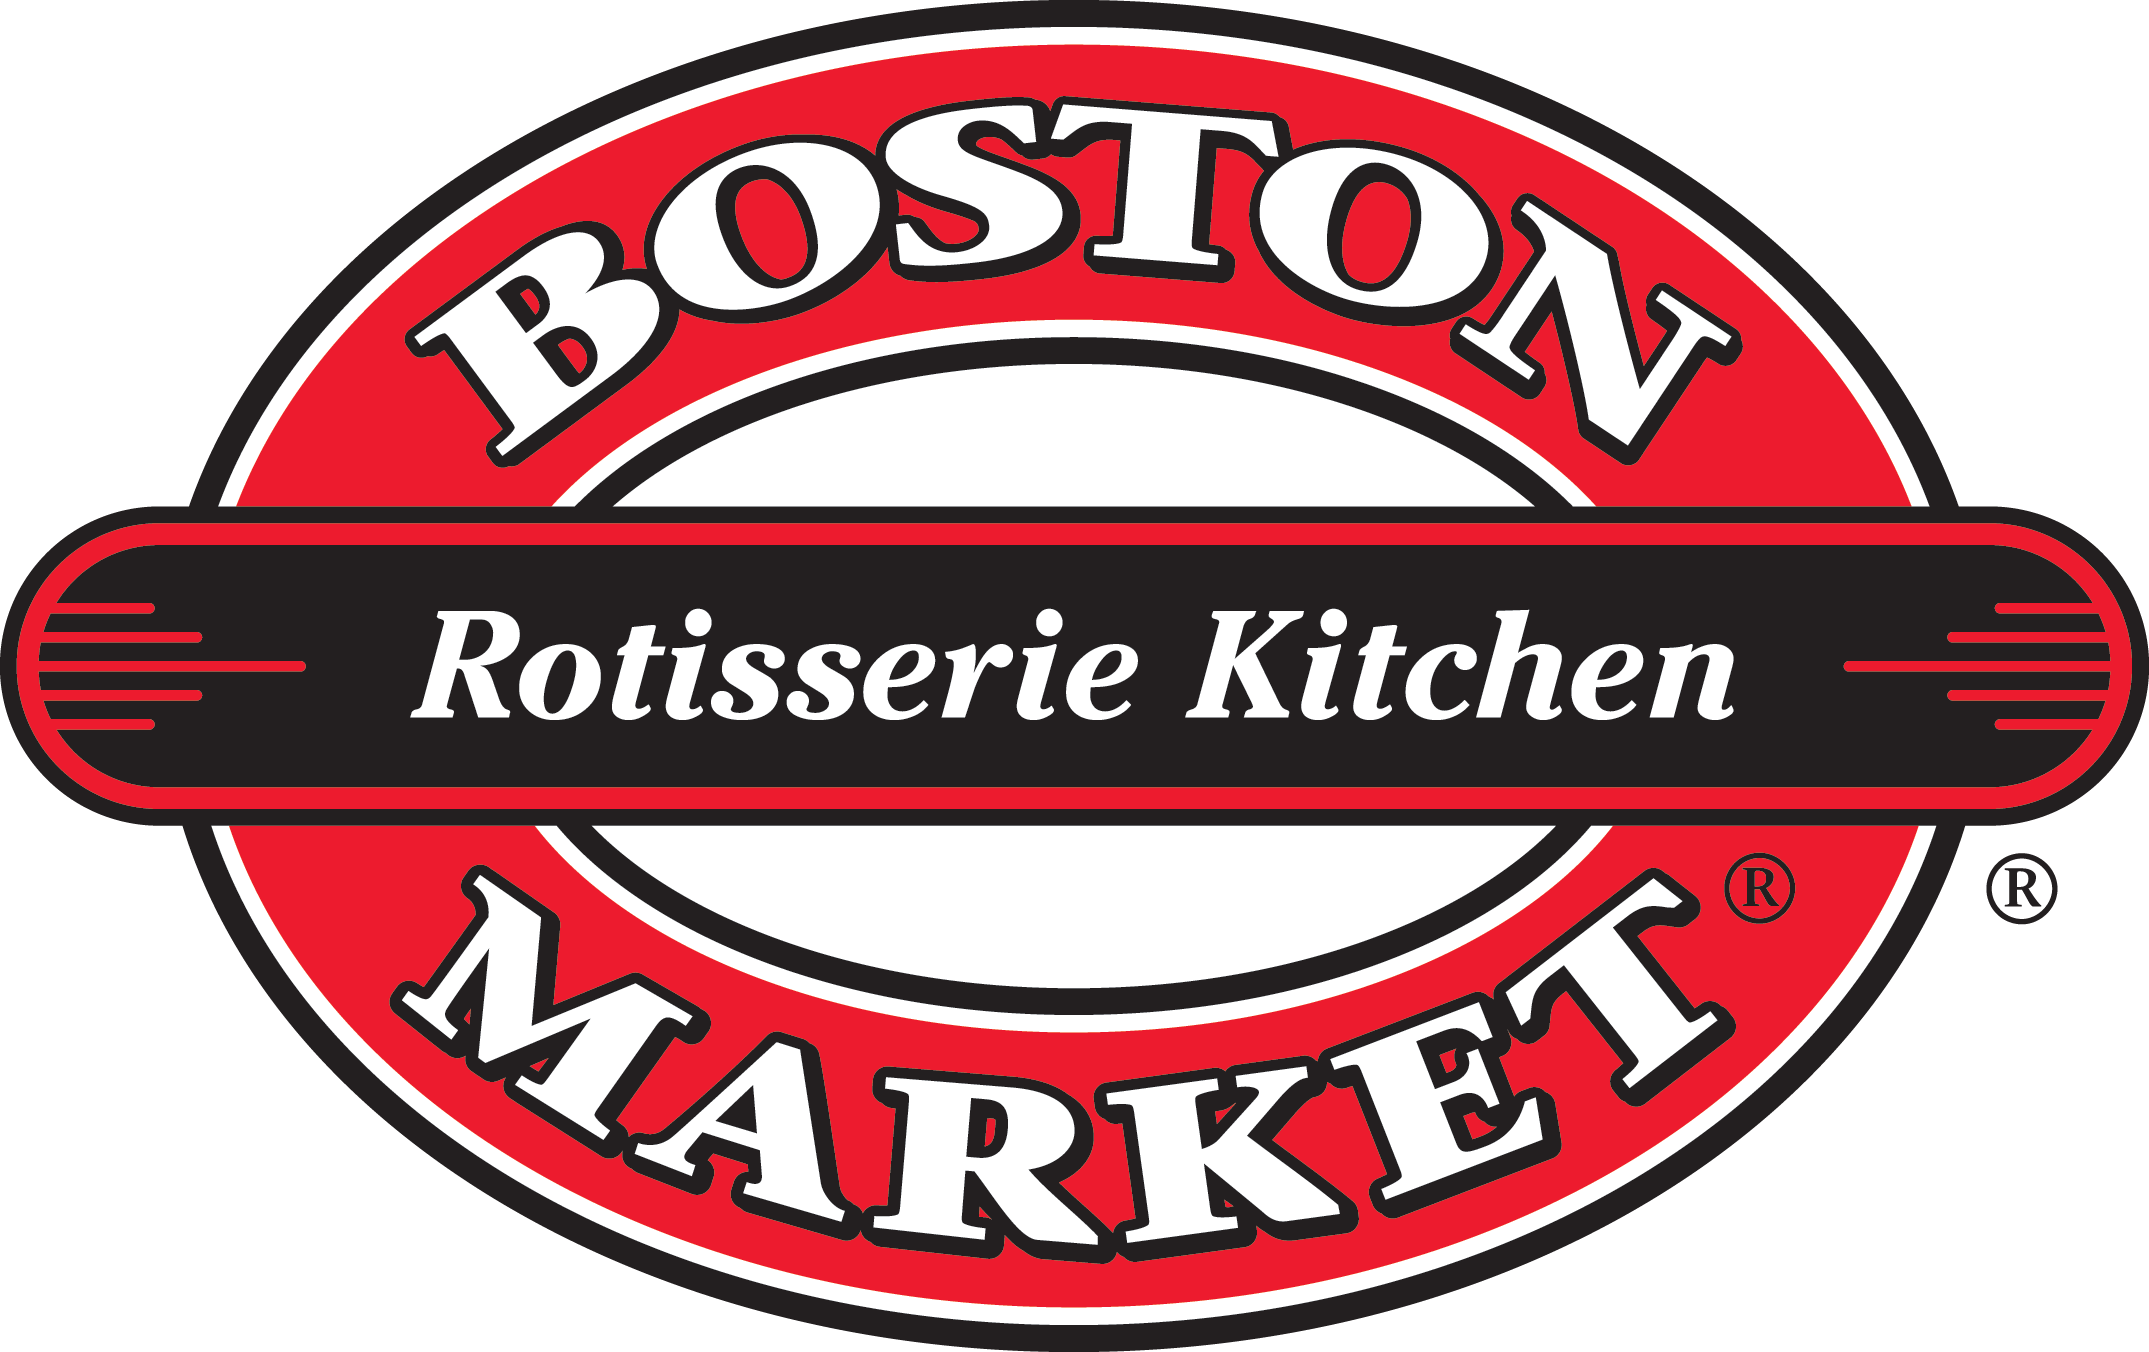 Boston market BOGO individual meal with drink exp 2/20